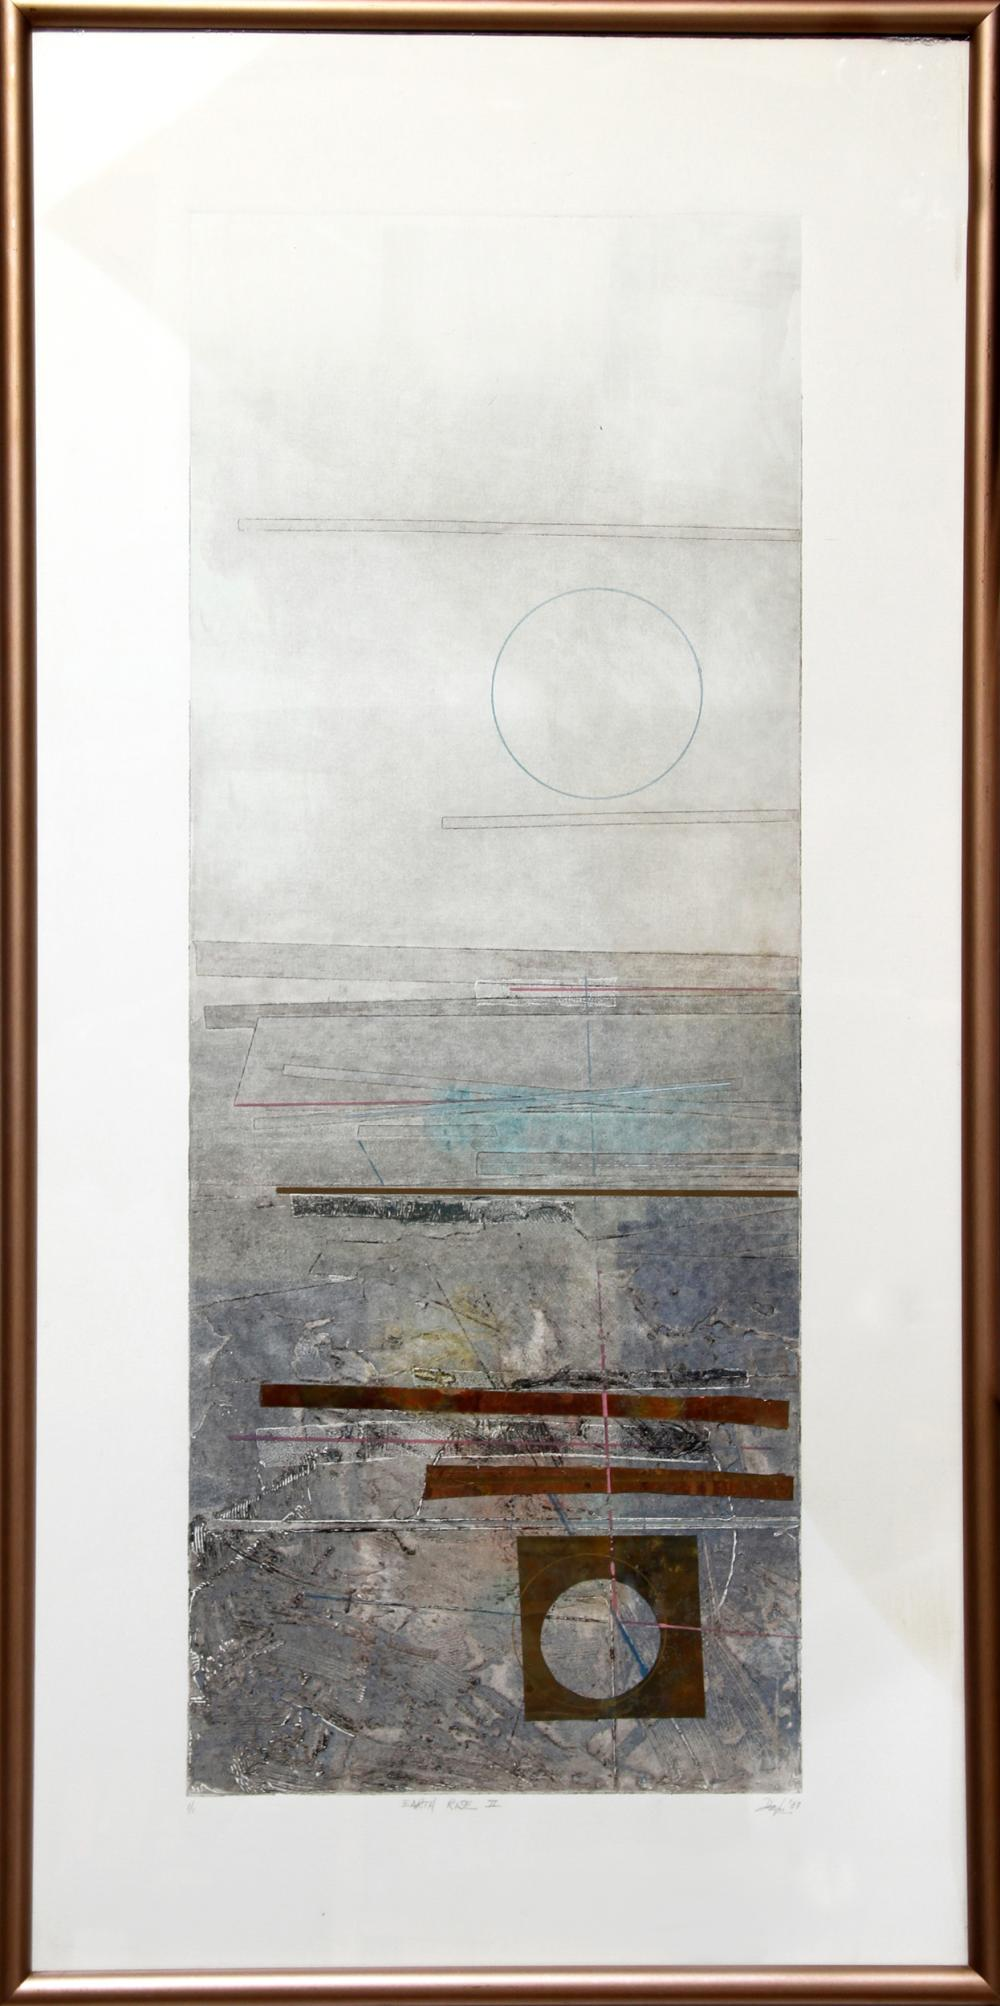 Robert Alan Devoe, Earth Rise II, Monoprint